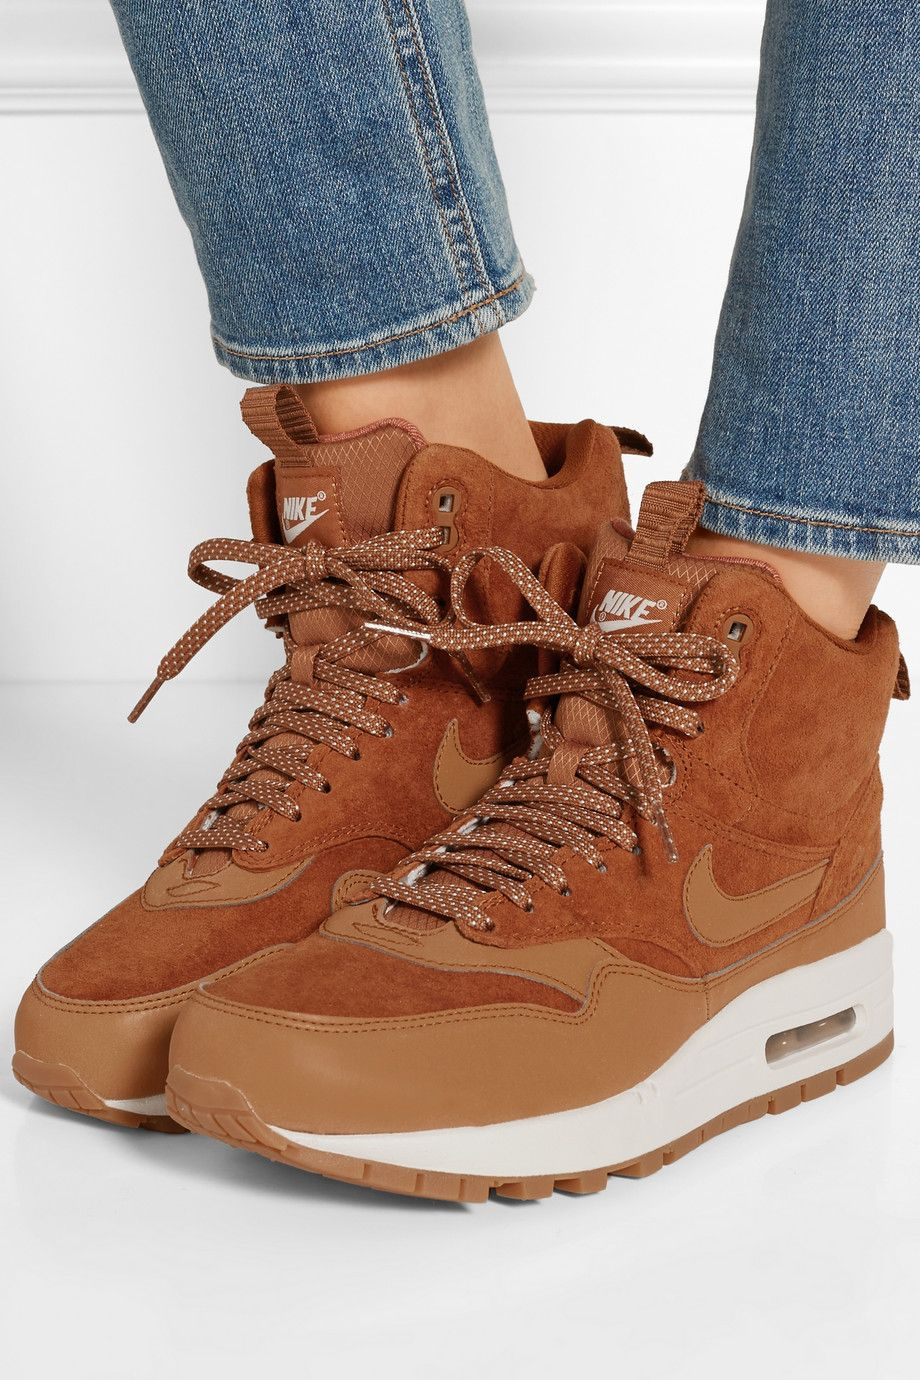 Nike | Air Max 1 suede and leather high top sneakers | NET A